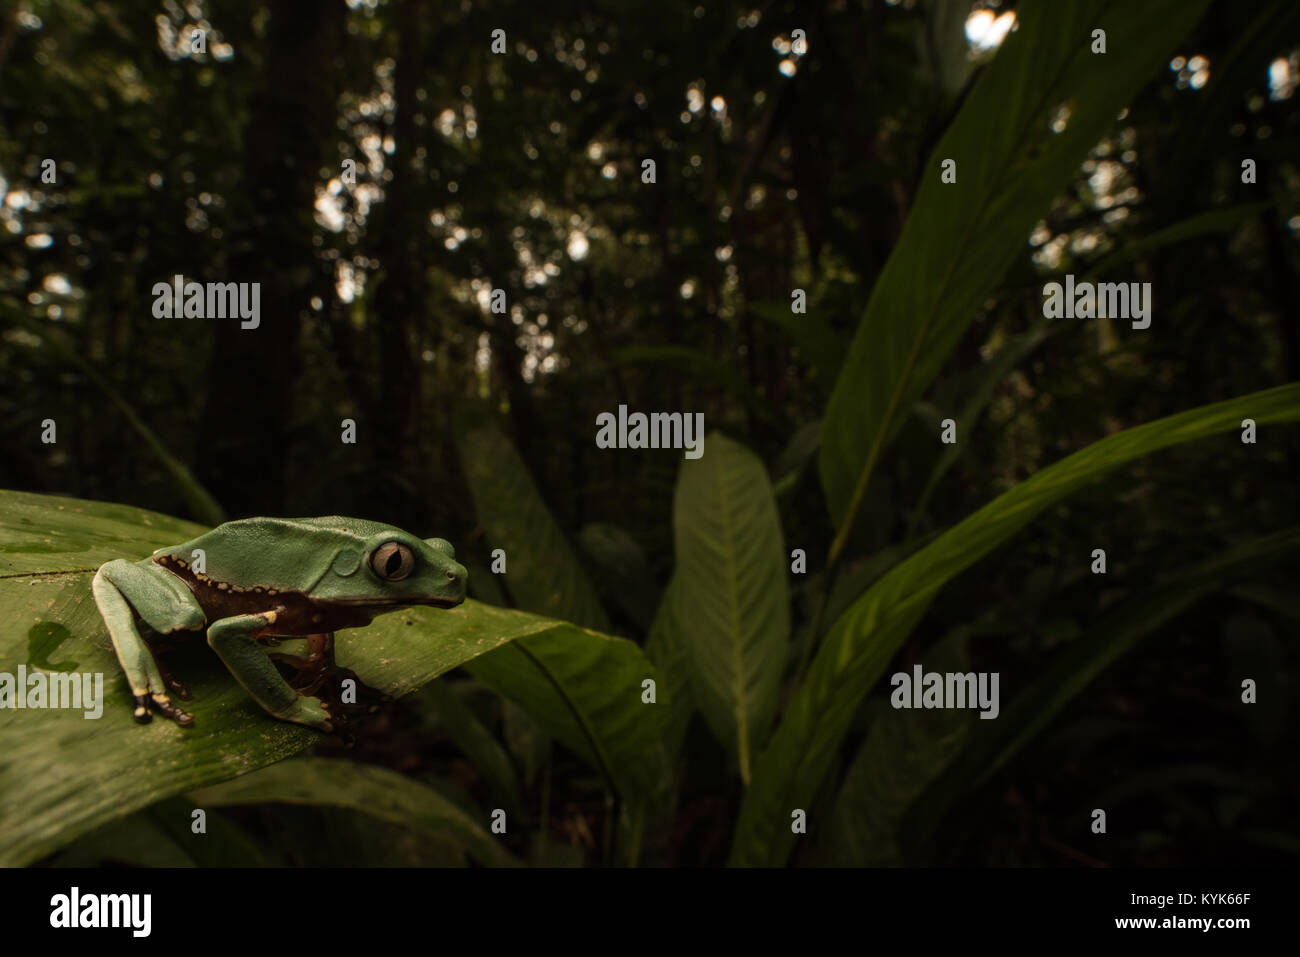 One of the largest tree frogs, a giant monkey tree frog (Phyllomedusa bicolor). This one is still young and has - Stock Image